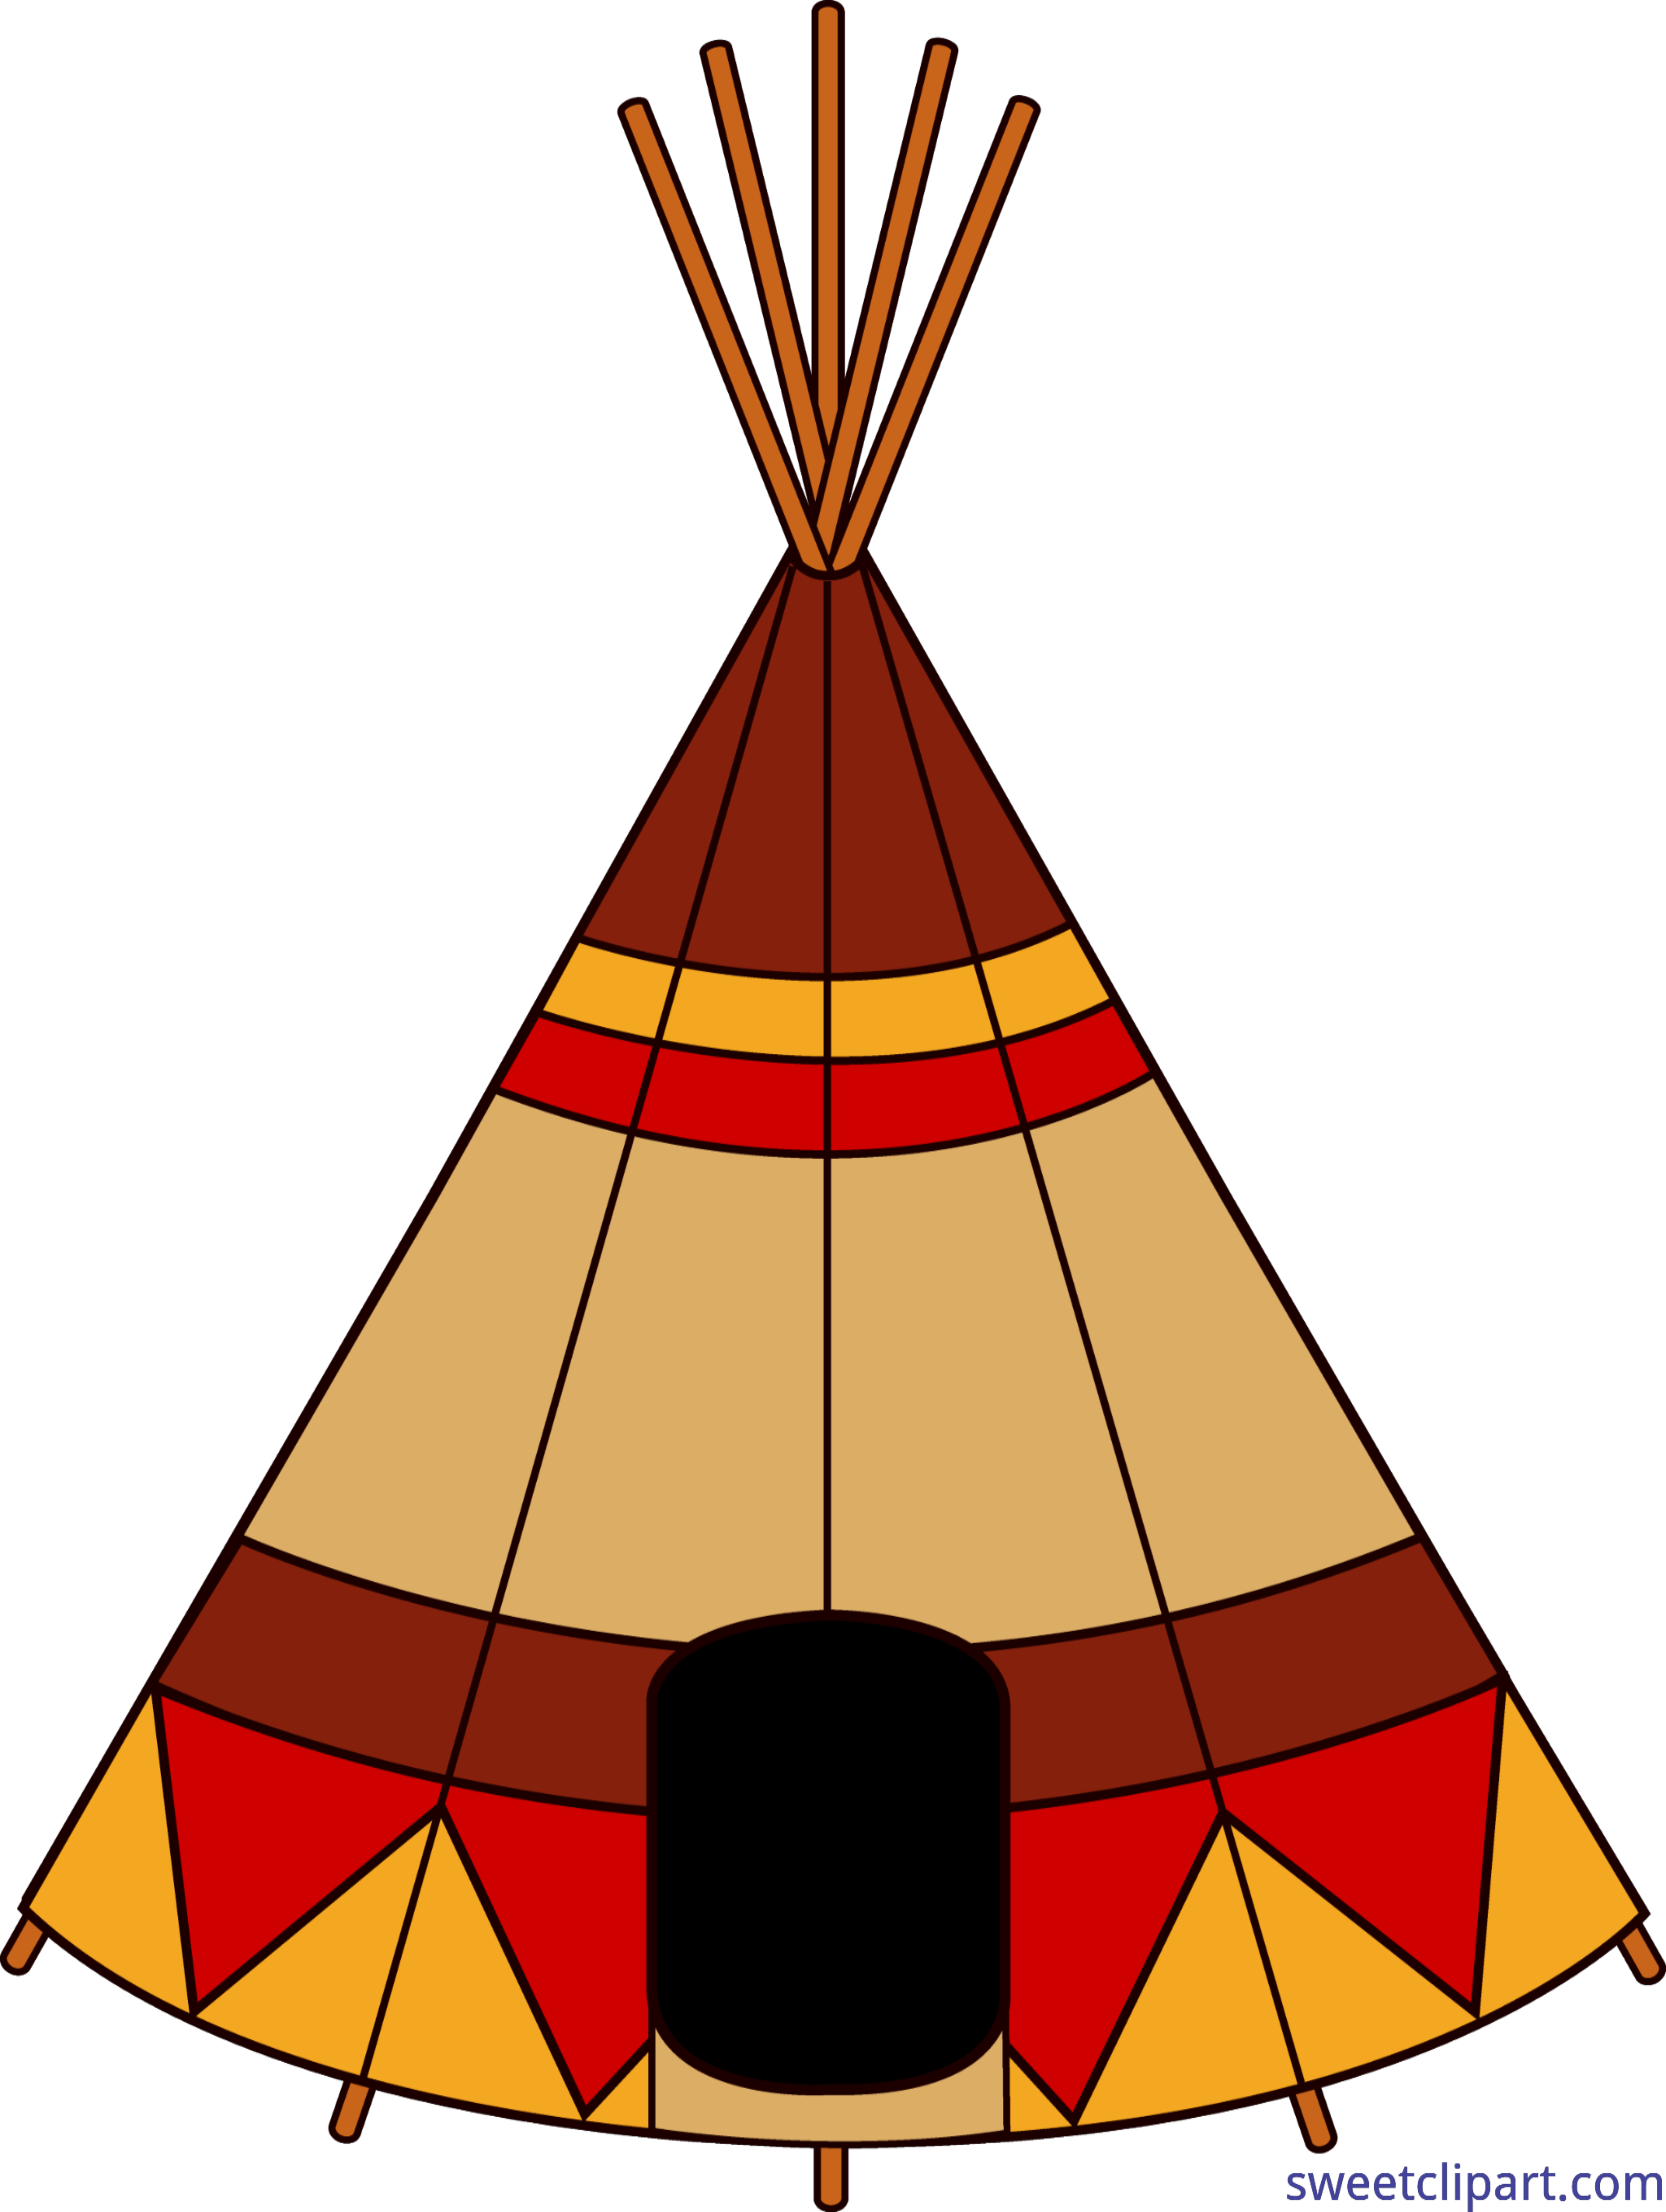 Clipart tent triangle object. Teepee clip art sweet